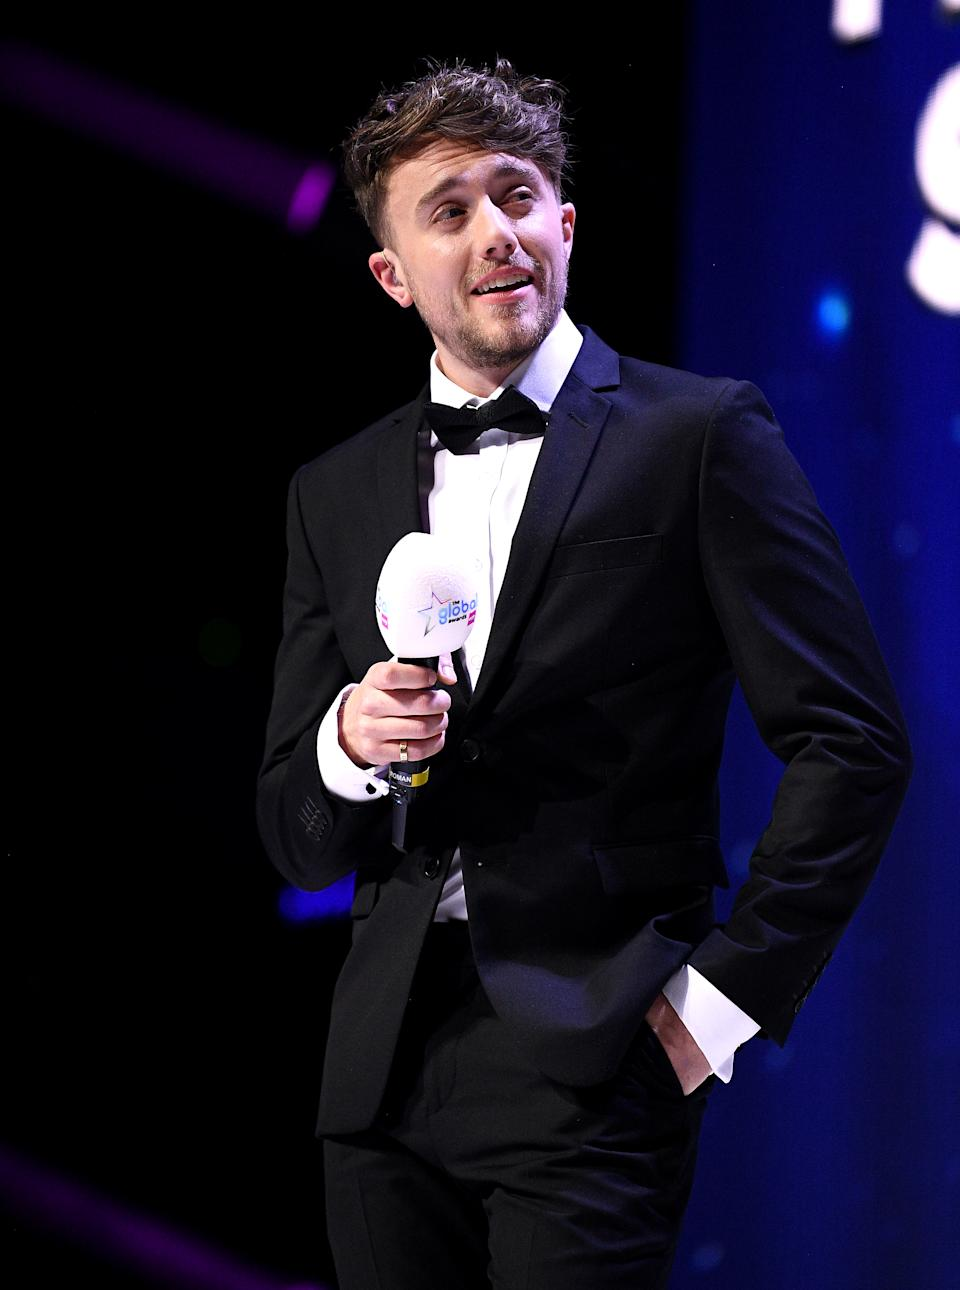 Host Roman Kemp on stage at the Global Awards 2020 with Very.co.uk at London's Eventim Apollo Hammersmith.